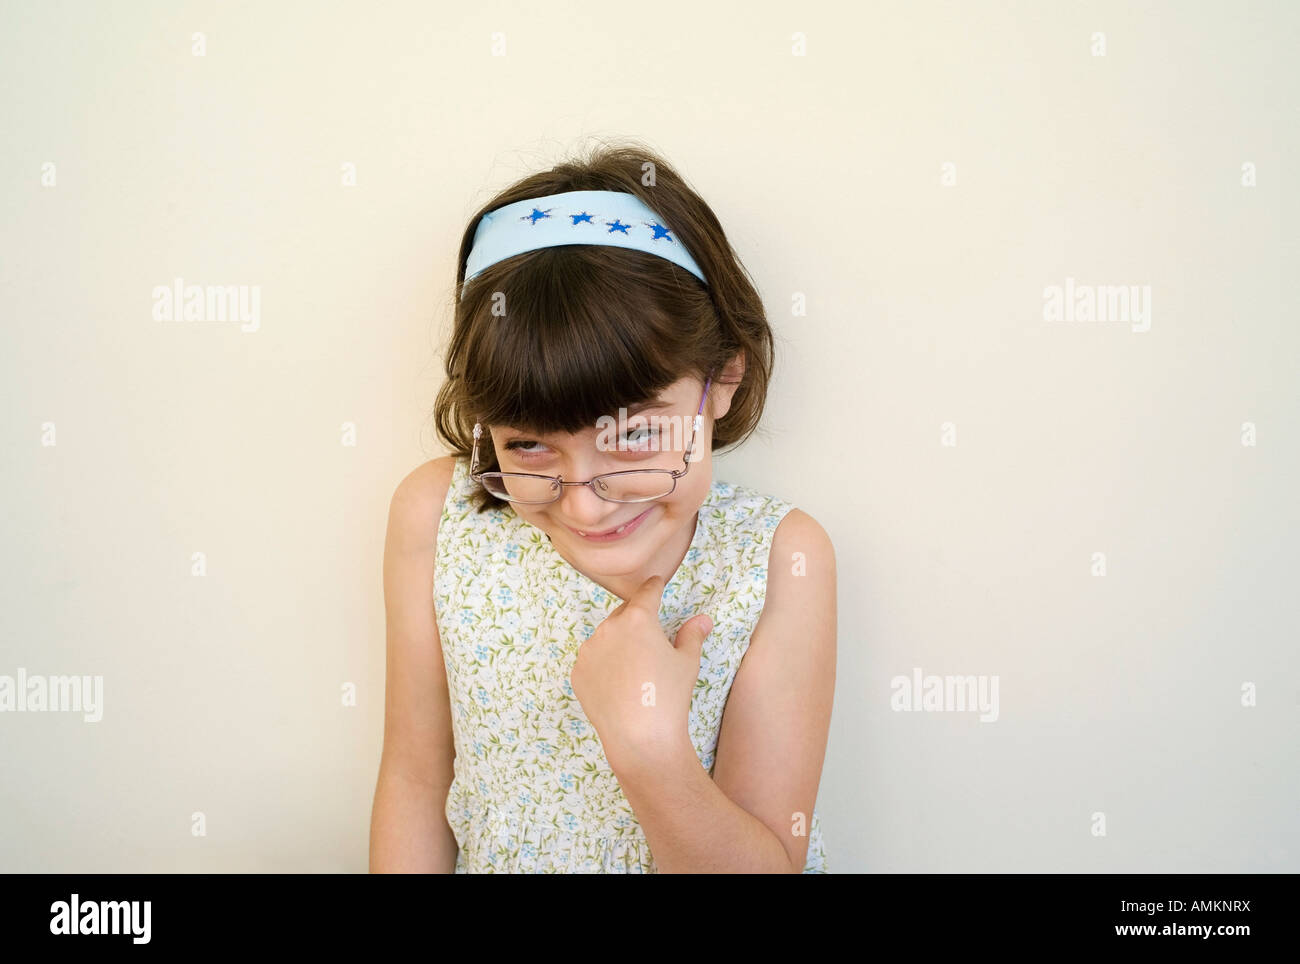 Who me? Girl points the finger at herself  in Toronto Ontario Canada - Stock Image